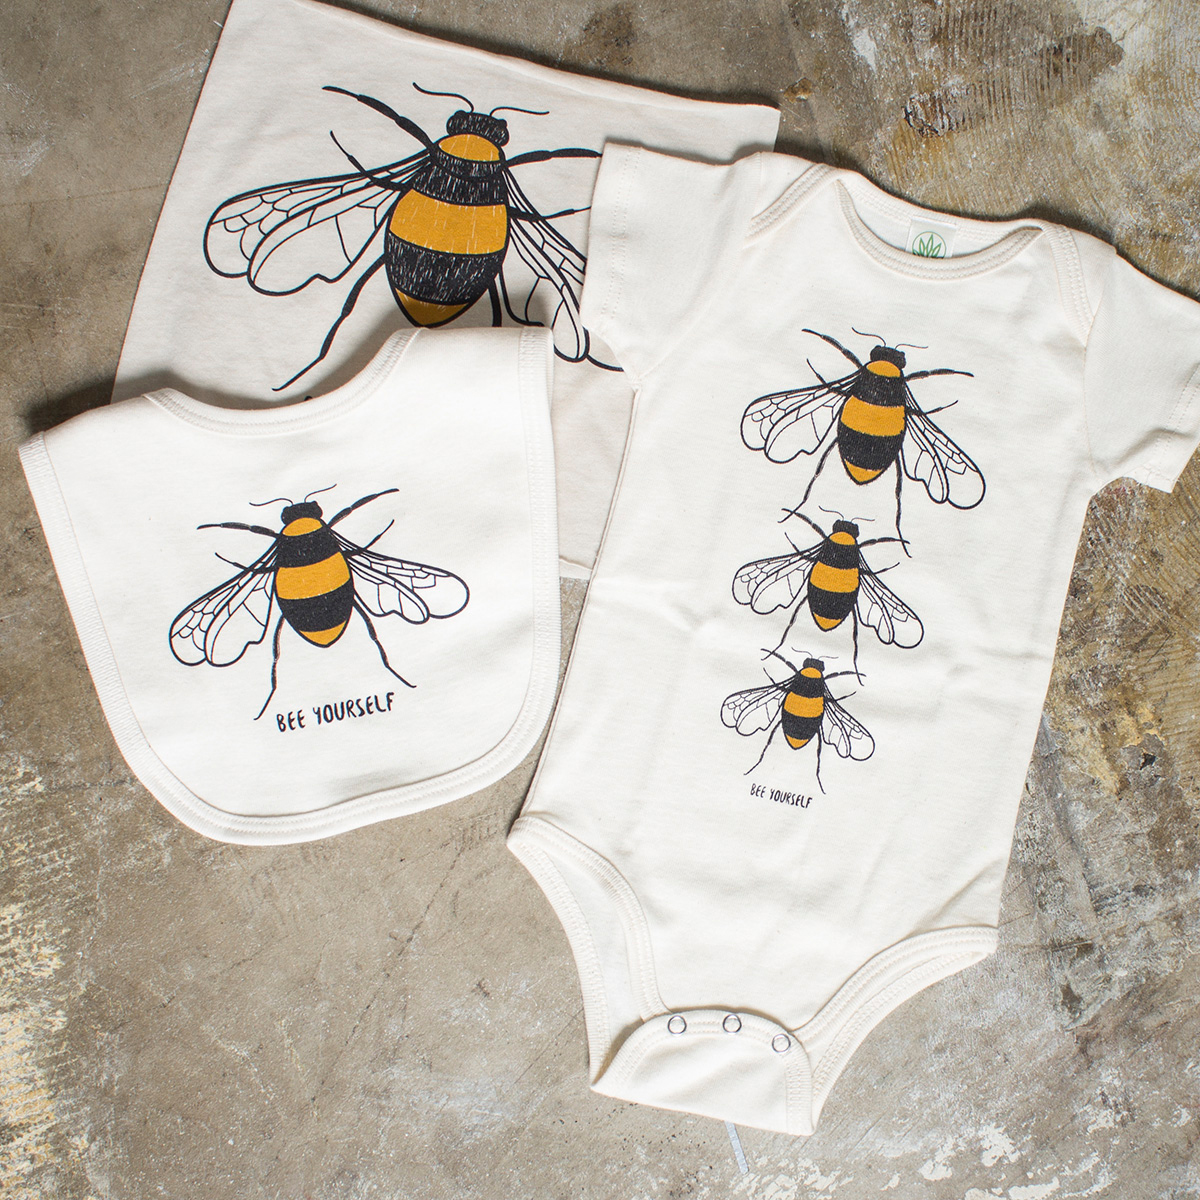 Organic Baby Gift Ideas - Bee Yourself